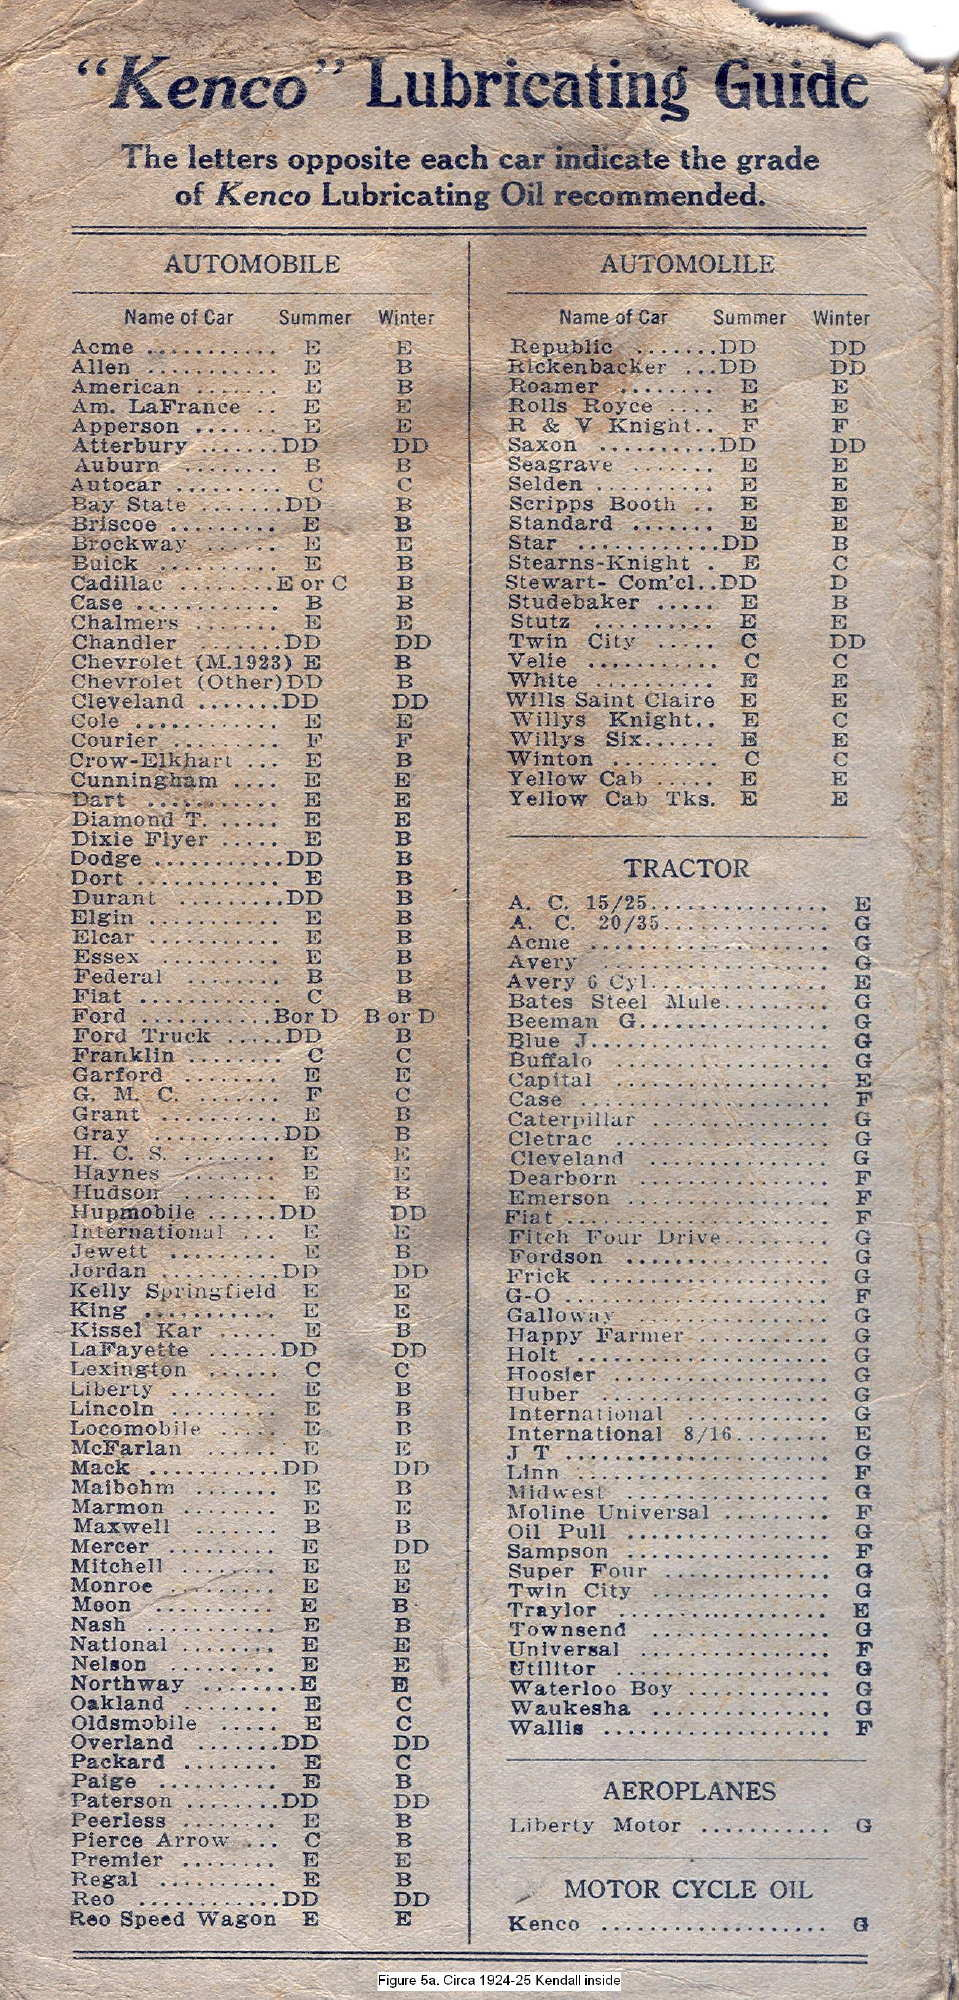 Lubrication Ads on Old Road Maps